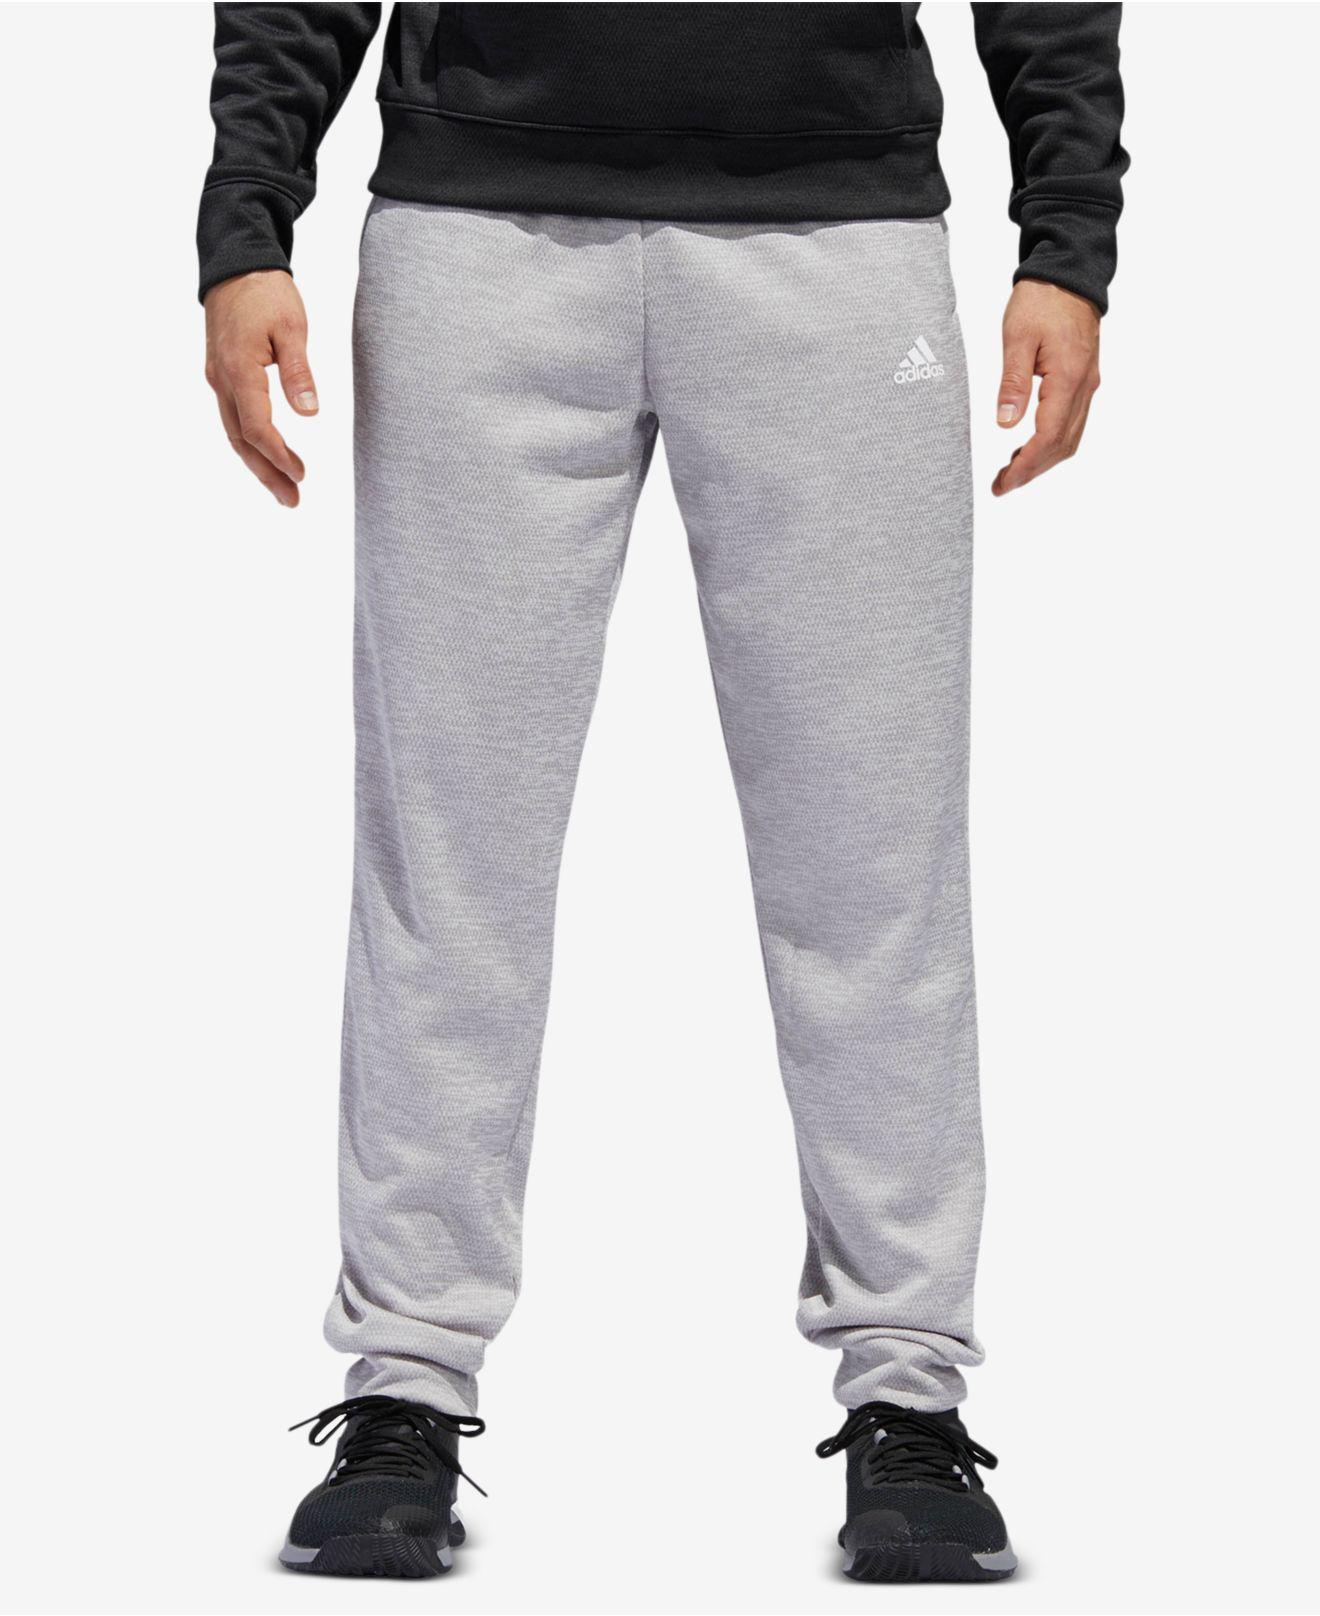 ed2cb4a91 Lyst - adidas Team Issue Fleece Joggers in Gray for Men